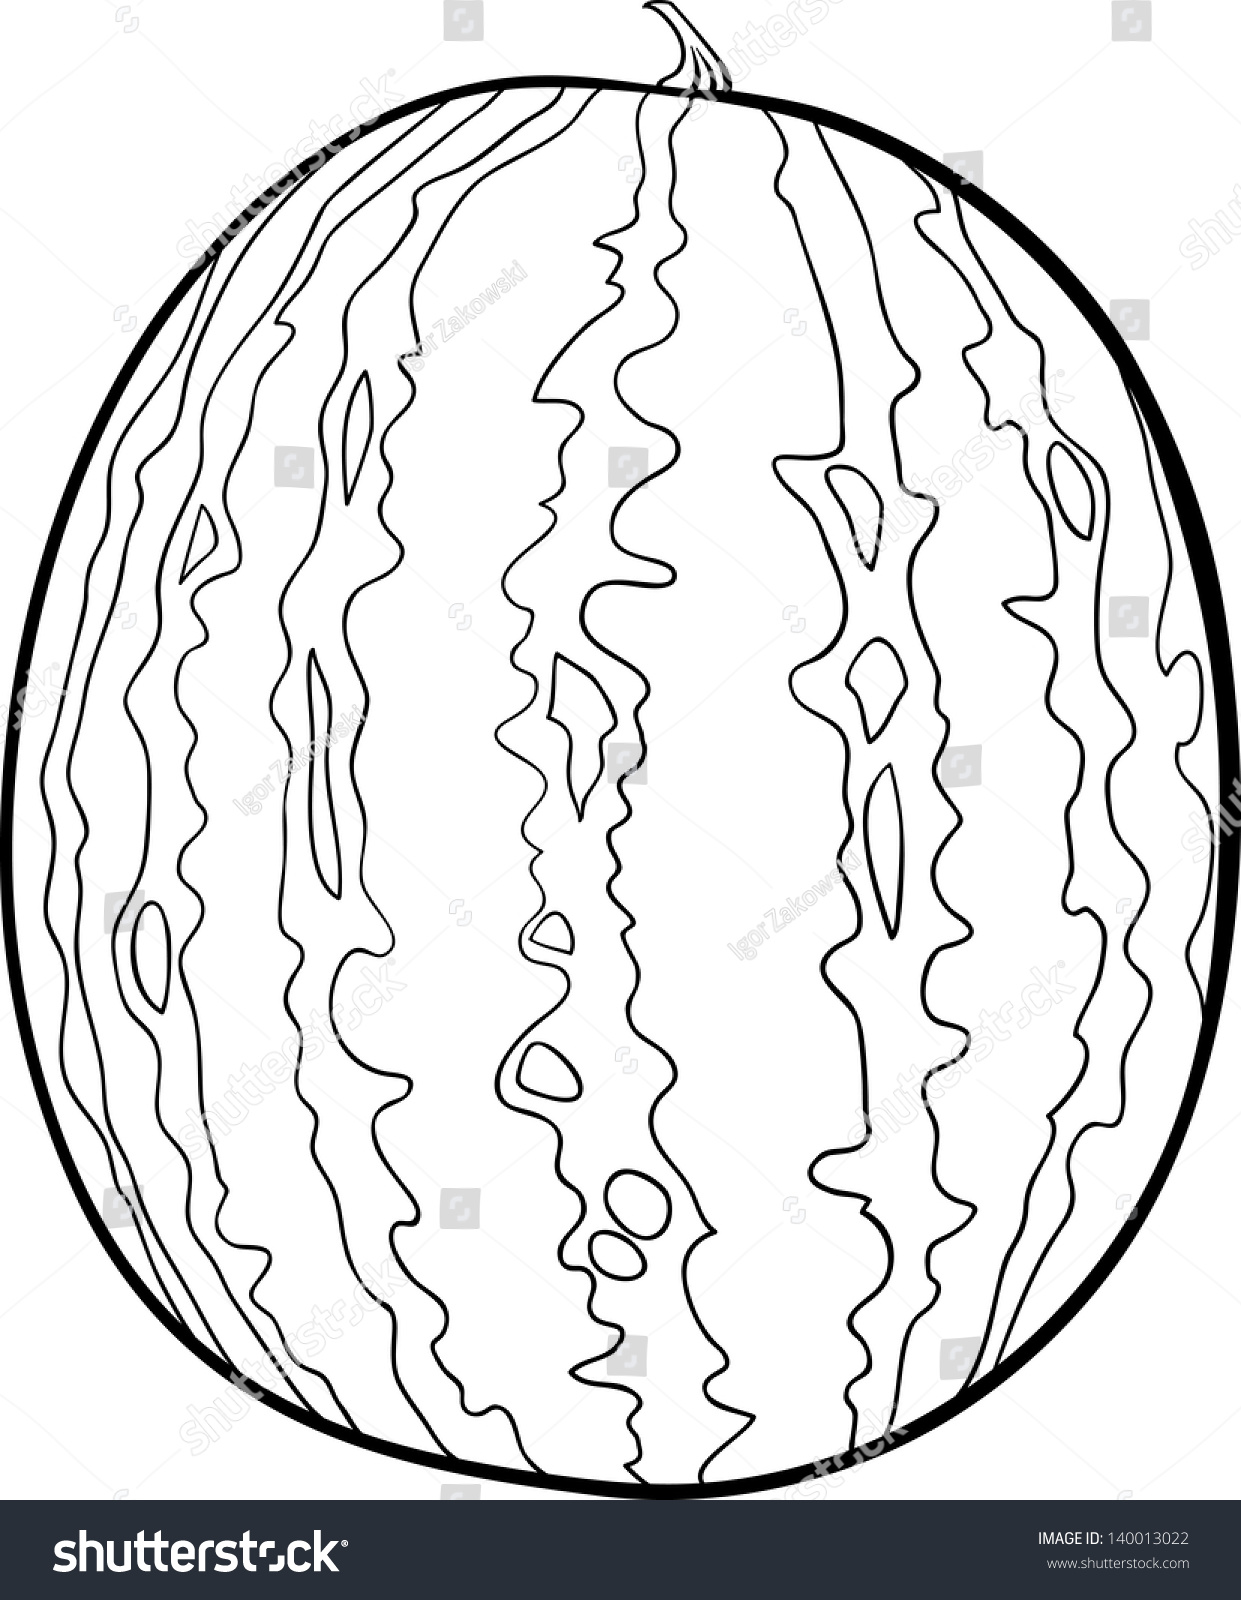 hd wallpapers free coloring pages watermelon hcehd cf